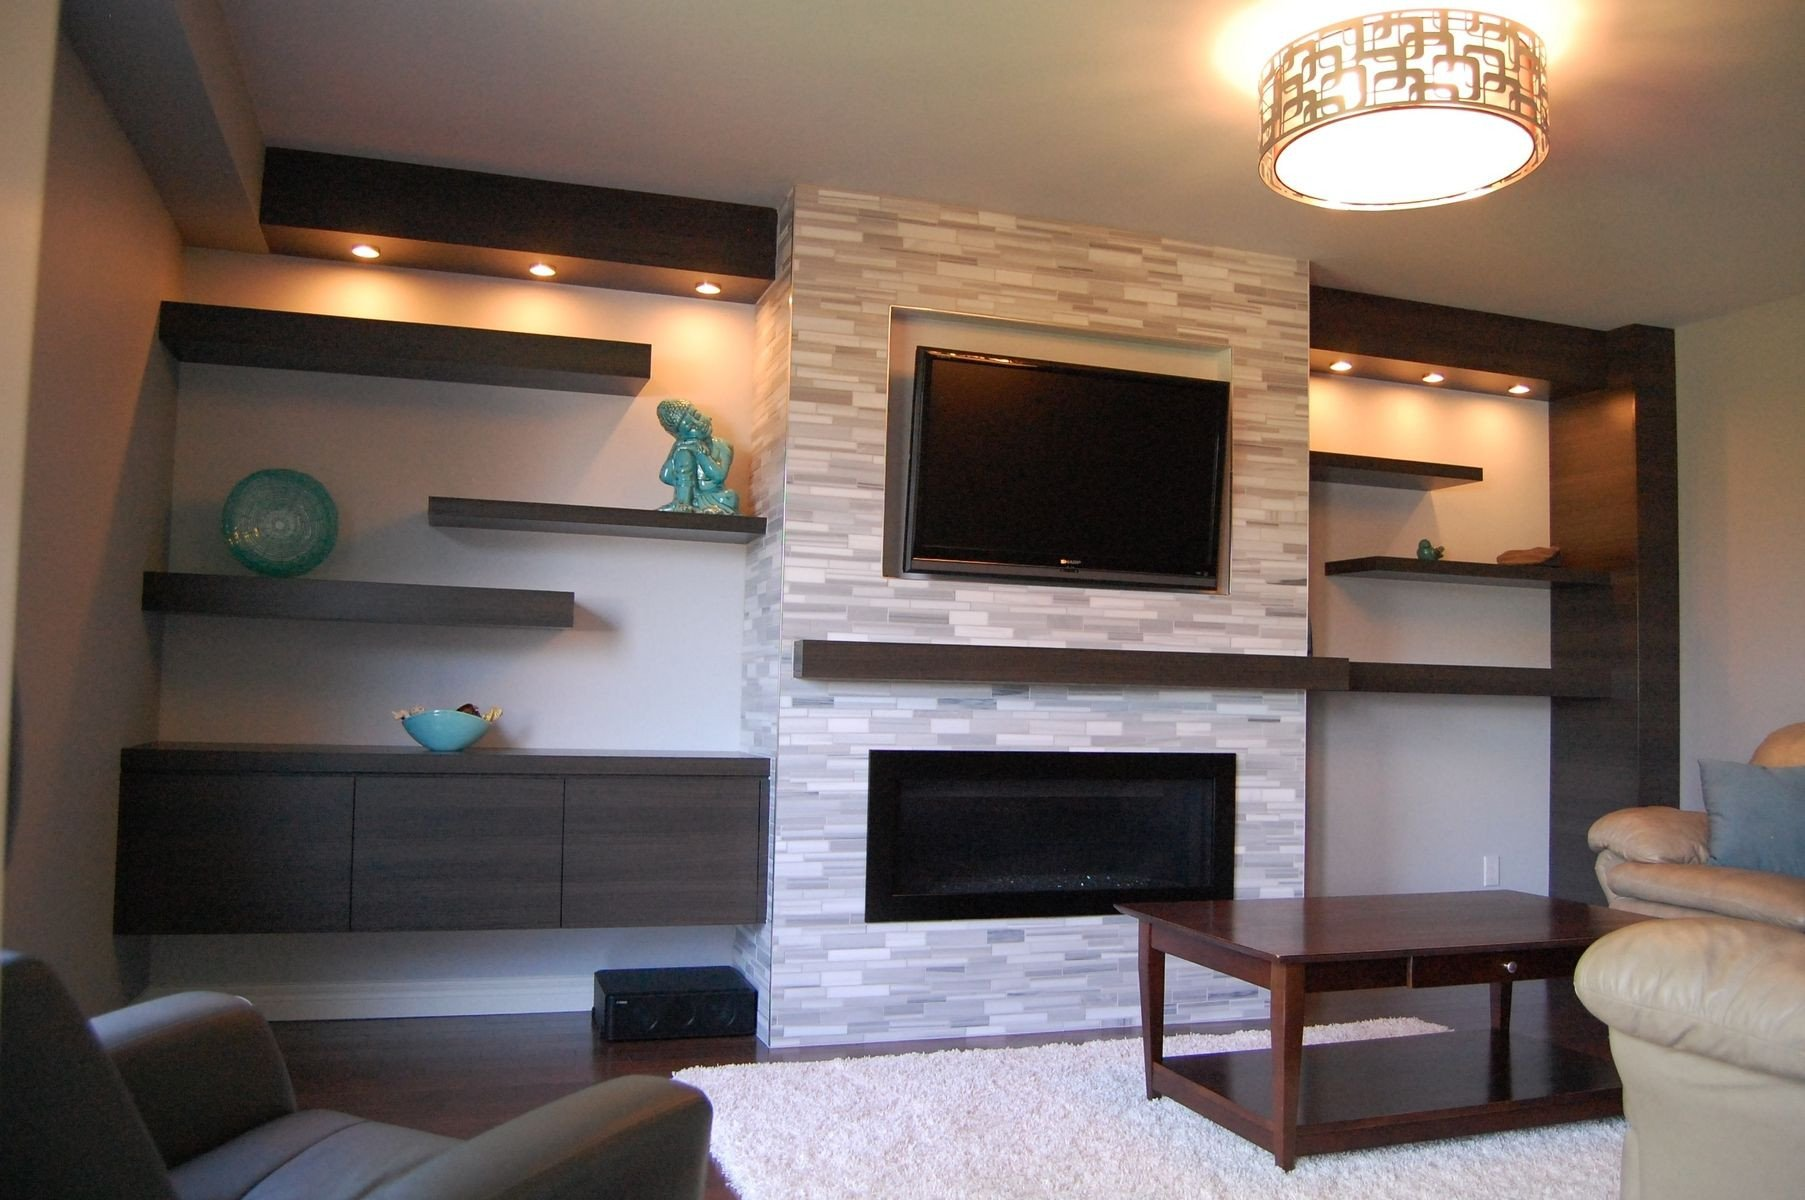 Wall Mounted Tv Ideas Bedroom New Custom Modern Wall Unit Made Pletely From A Printed